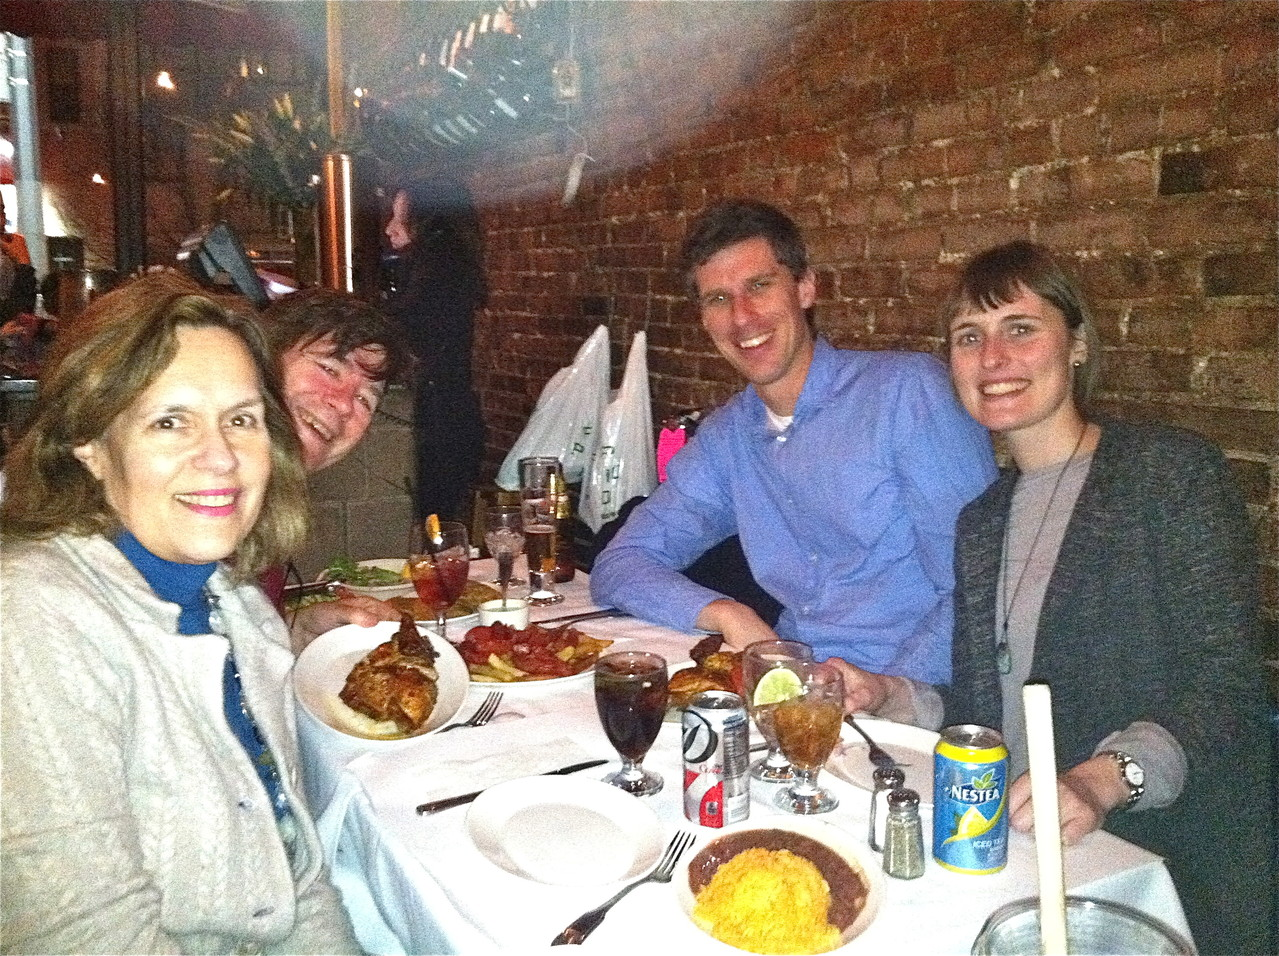 Lorraine, John, Patrick & Anna at Pio Pio, NYC  January 18, 2013